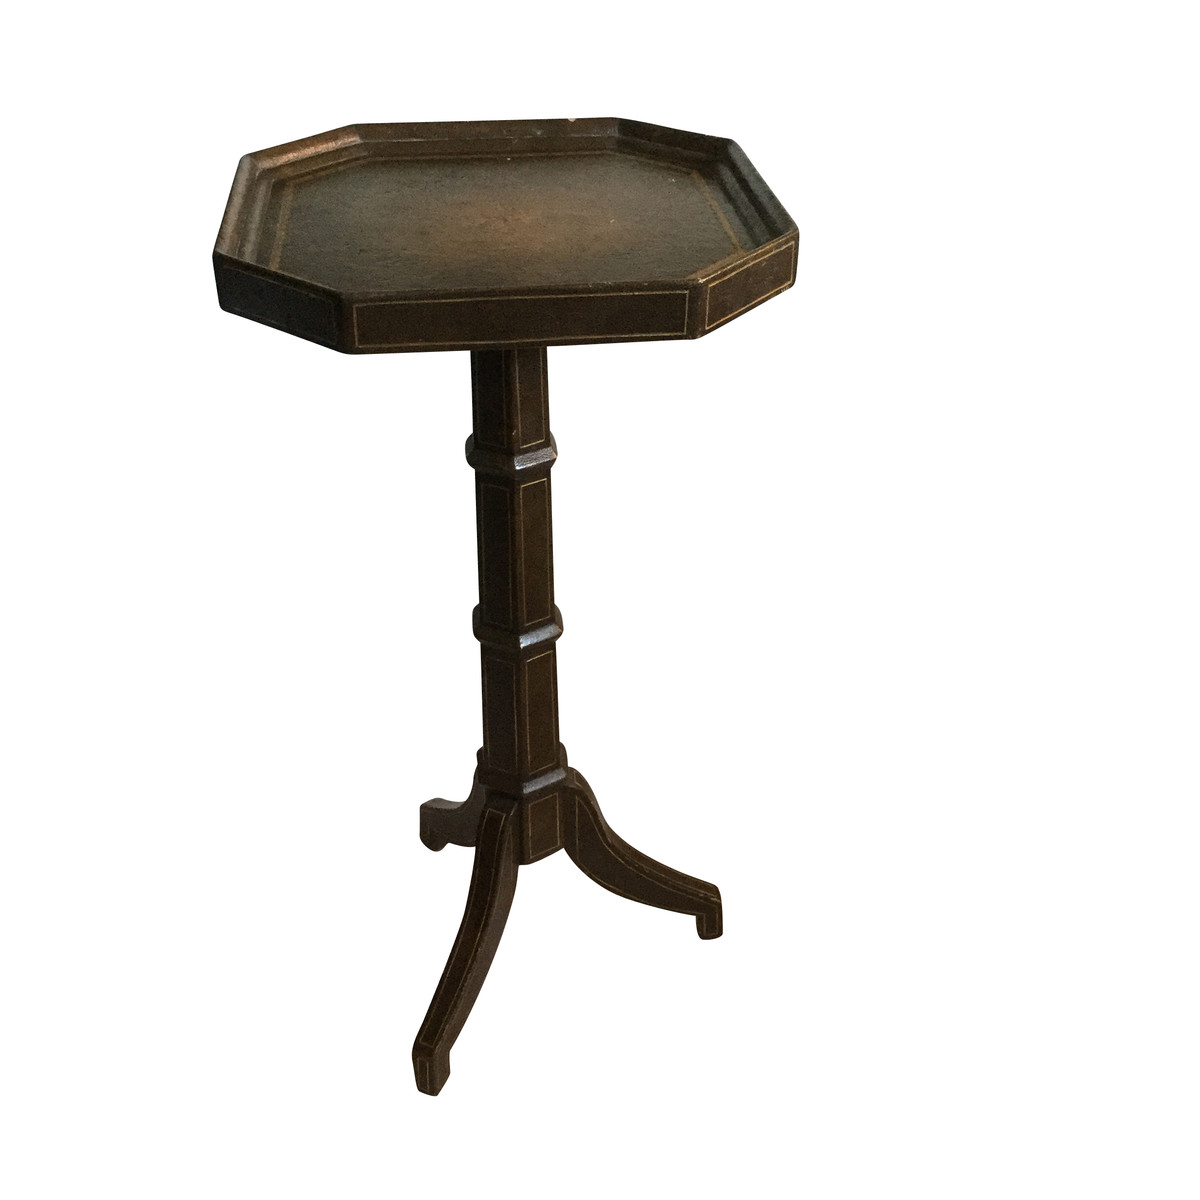 Balsamo antiques 1940 39 s french maison jansen leather for Cocktail tables